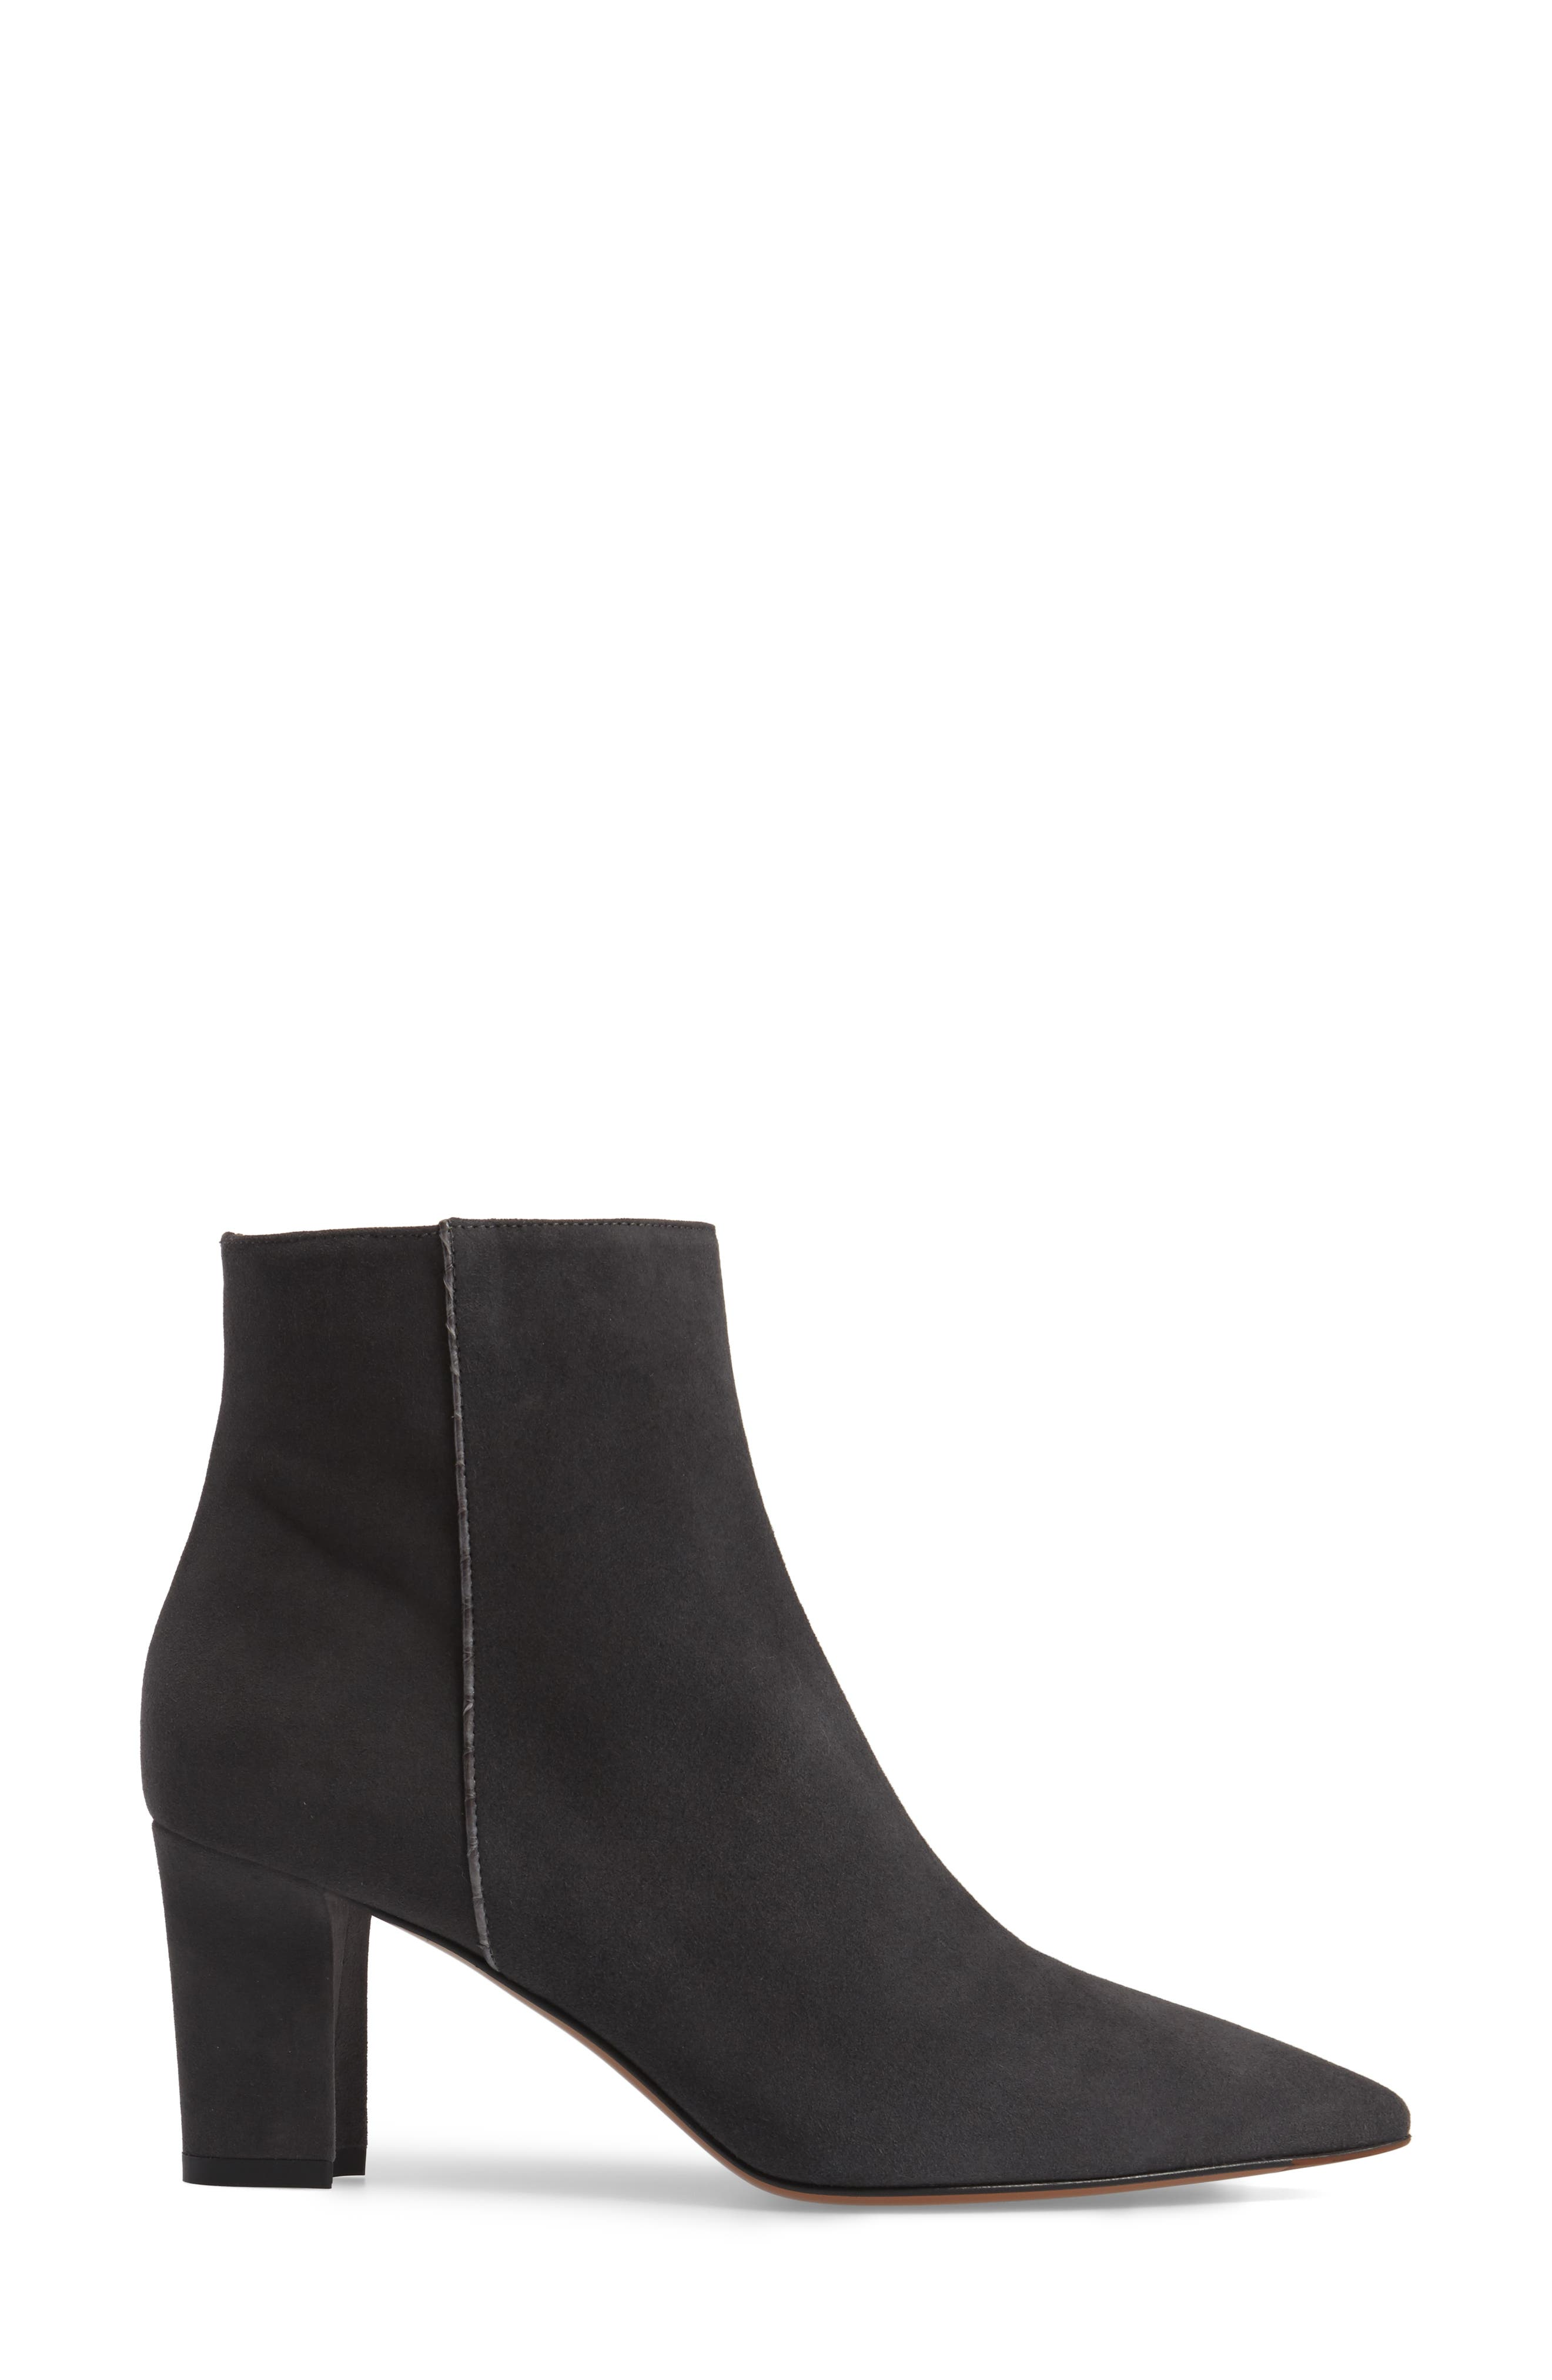 Maia Weatherproof Pointed Toe Bootie,                             Alternate thumbnail 3, color,                             Anthracite Suede